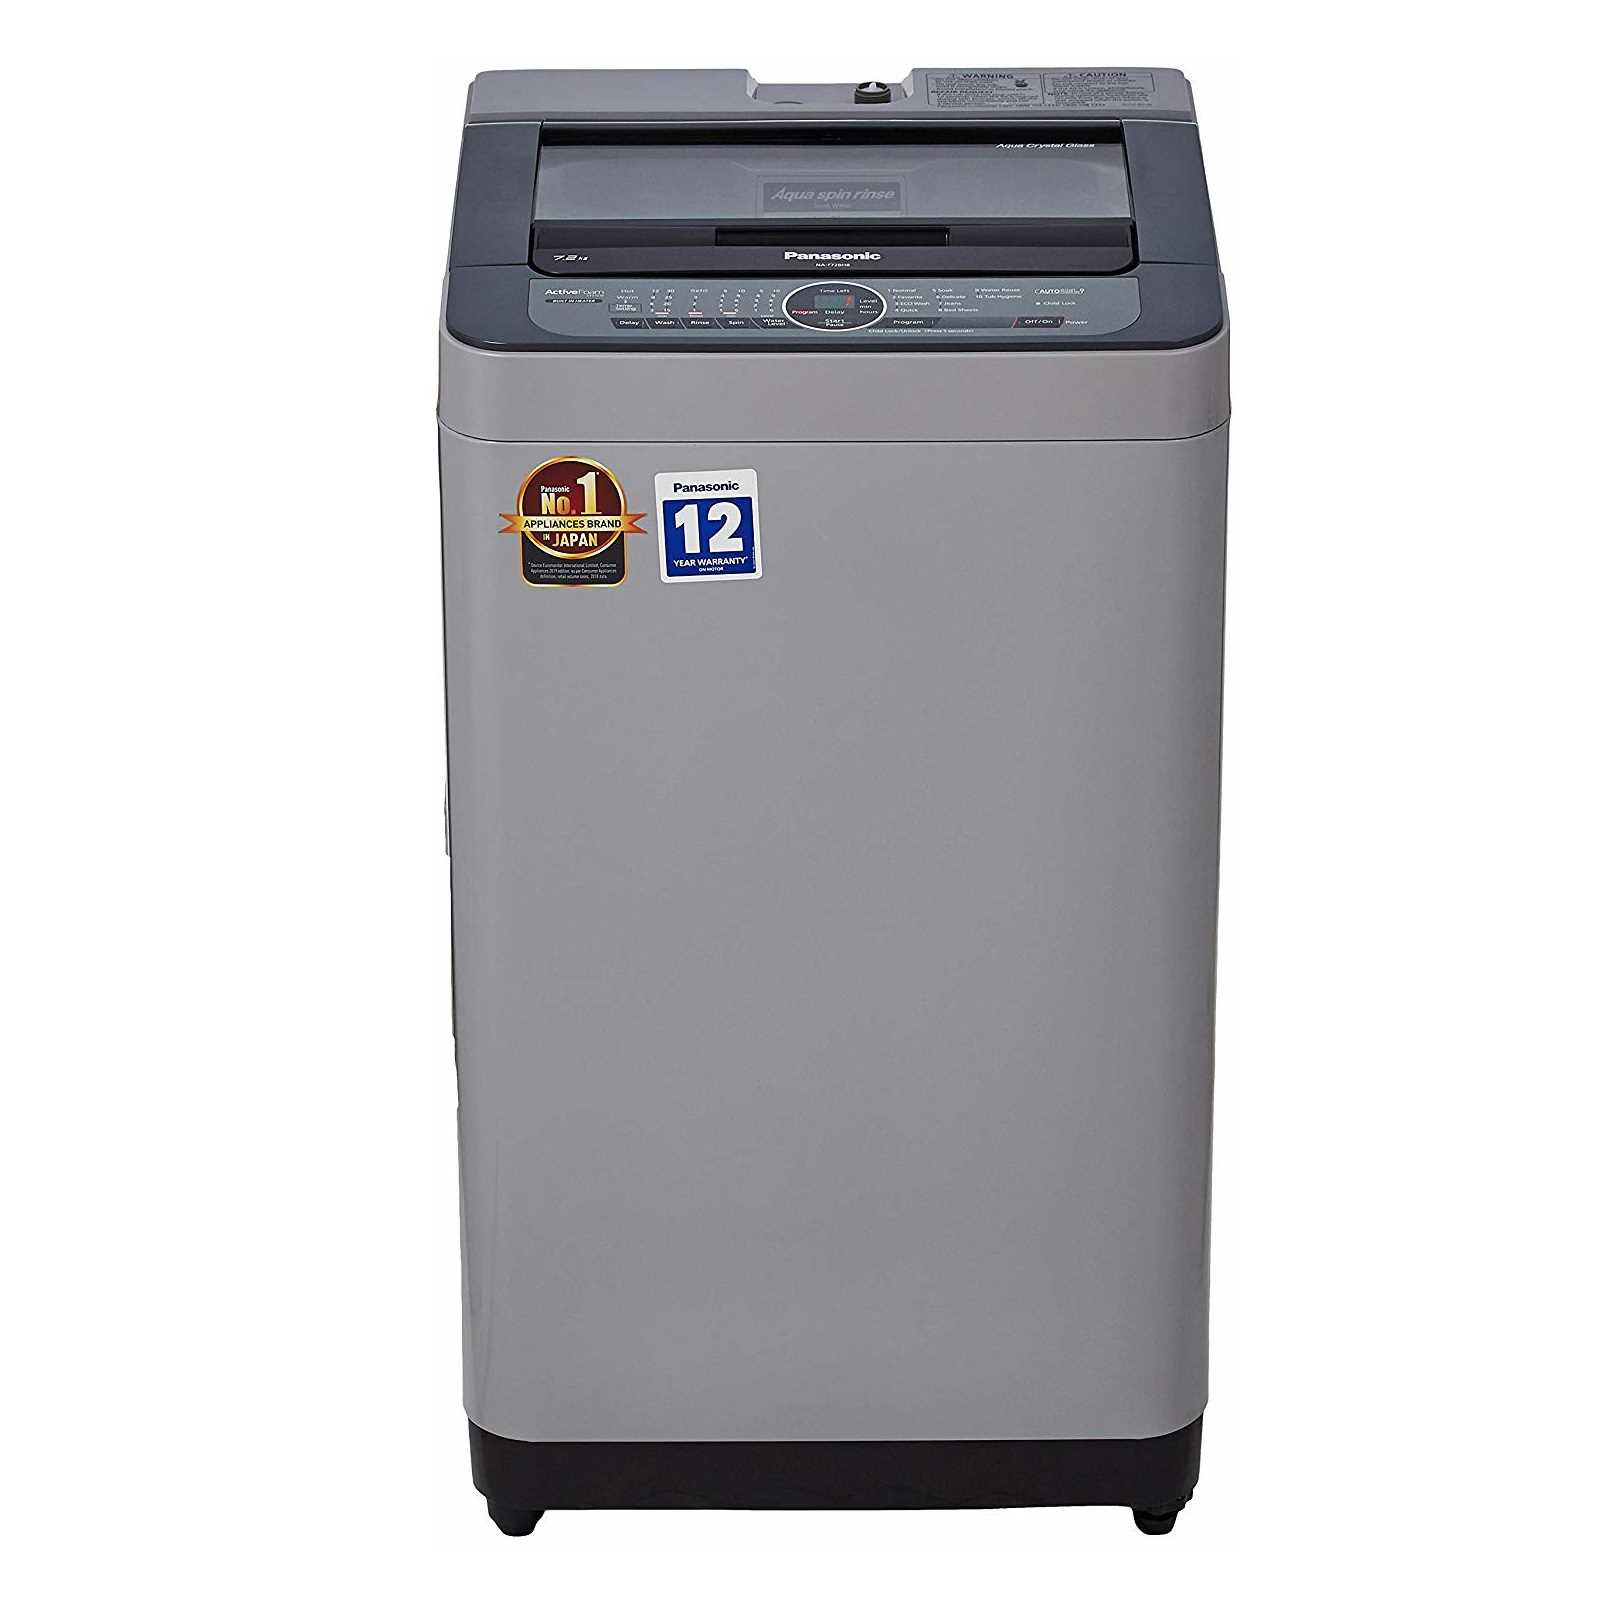 Panasonic NA F72BH8 7.2 Kg Fully Automatic Top Loading Washing Machine